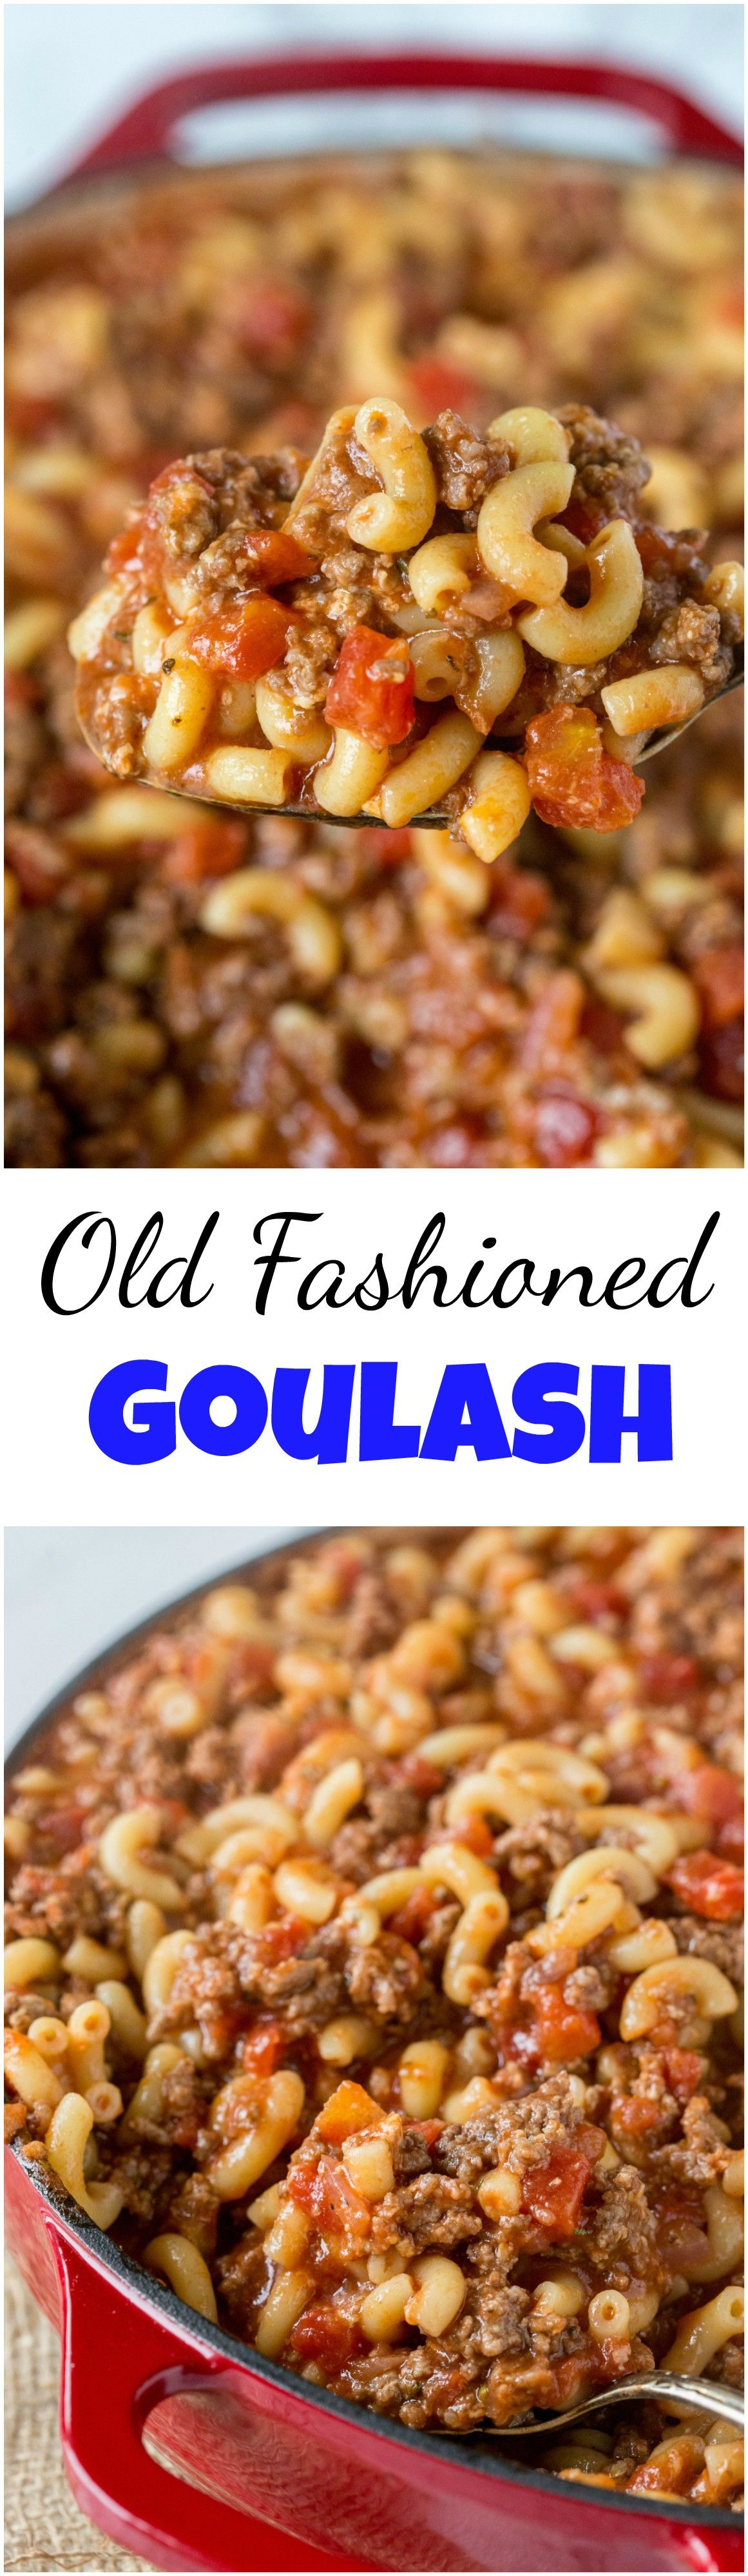 Old fashioned goulash american goulash collage food pinterest old fashioned goulash american goulash collage forumfinder Image collections